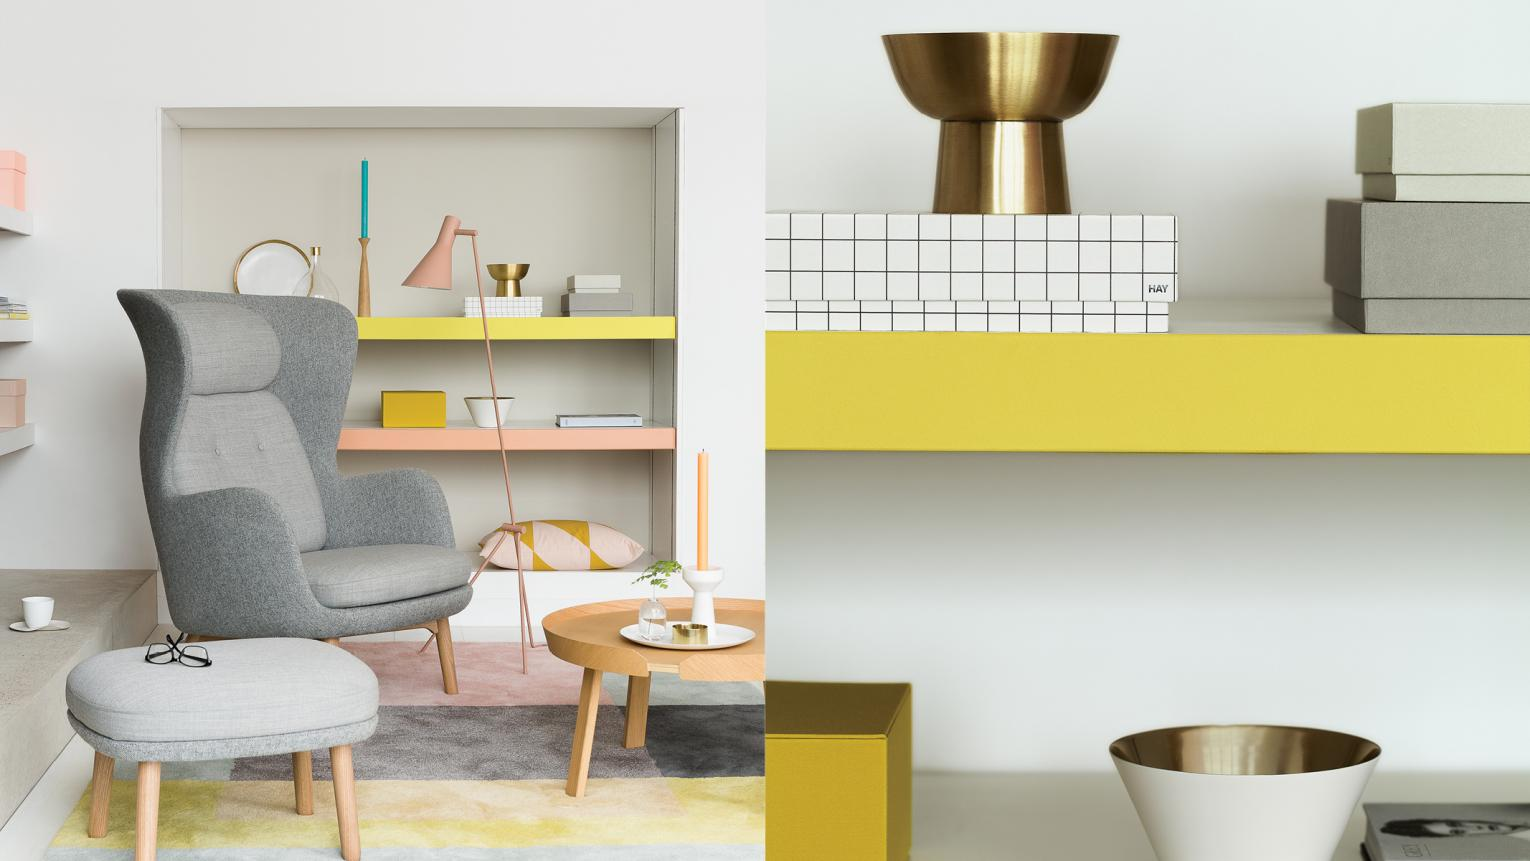 Understanding what colour combinations you like, and why you like them, can help boost your decorating confidence, and help you find a colour scheme you're truly happy with.